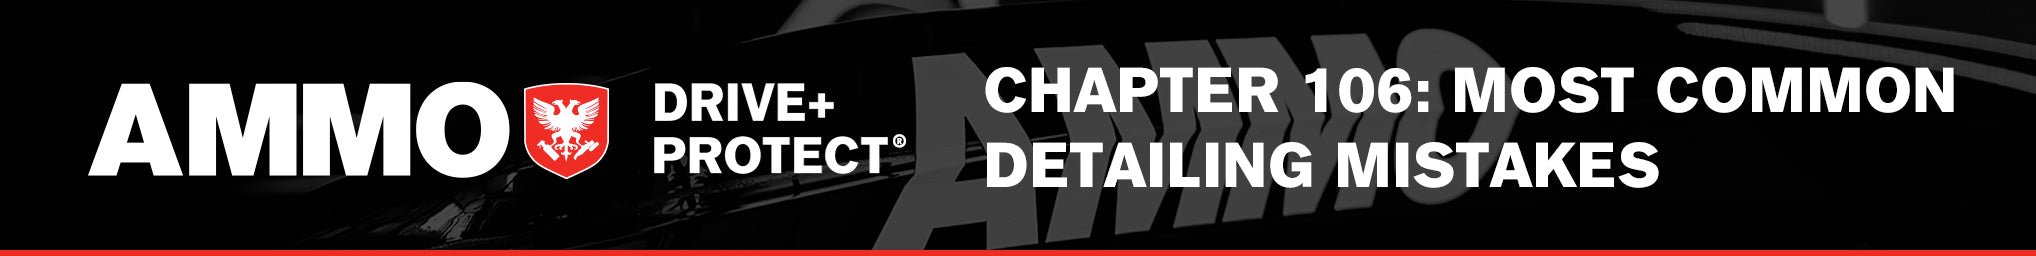 CHAPTER 106: MOST COMMON DETAILING MISTAKES